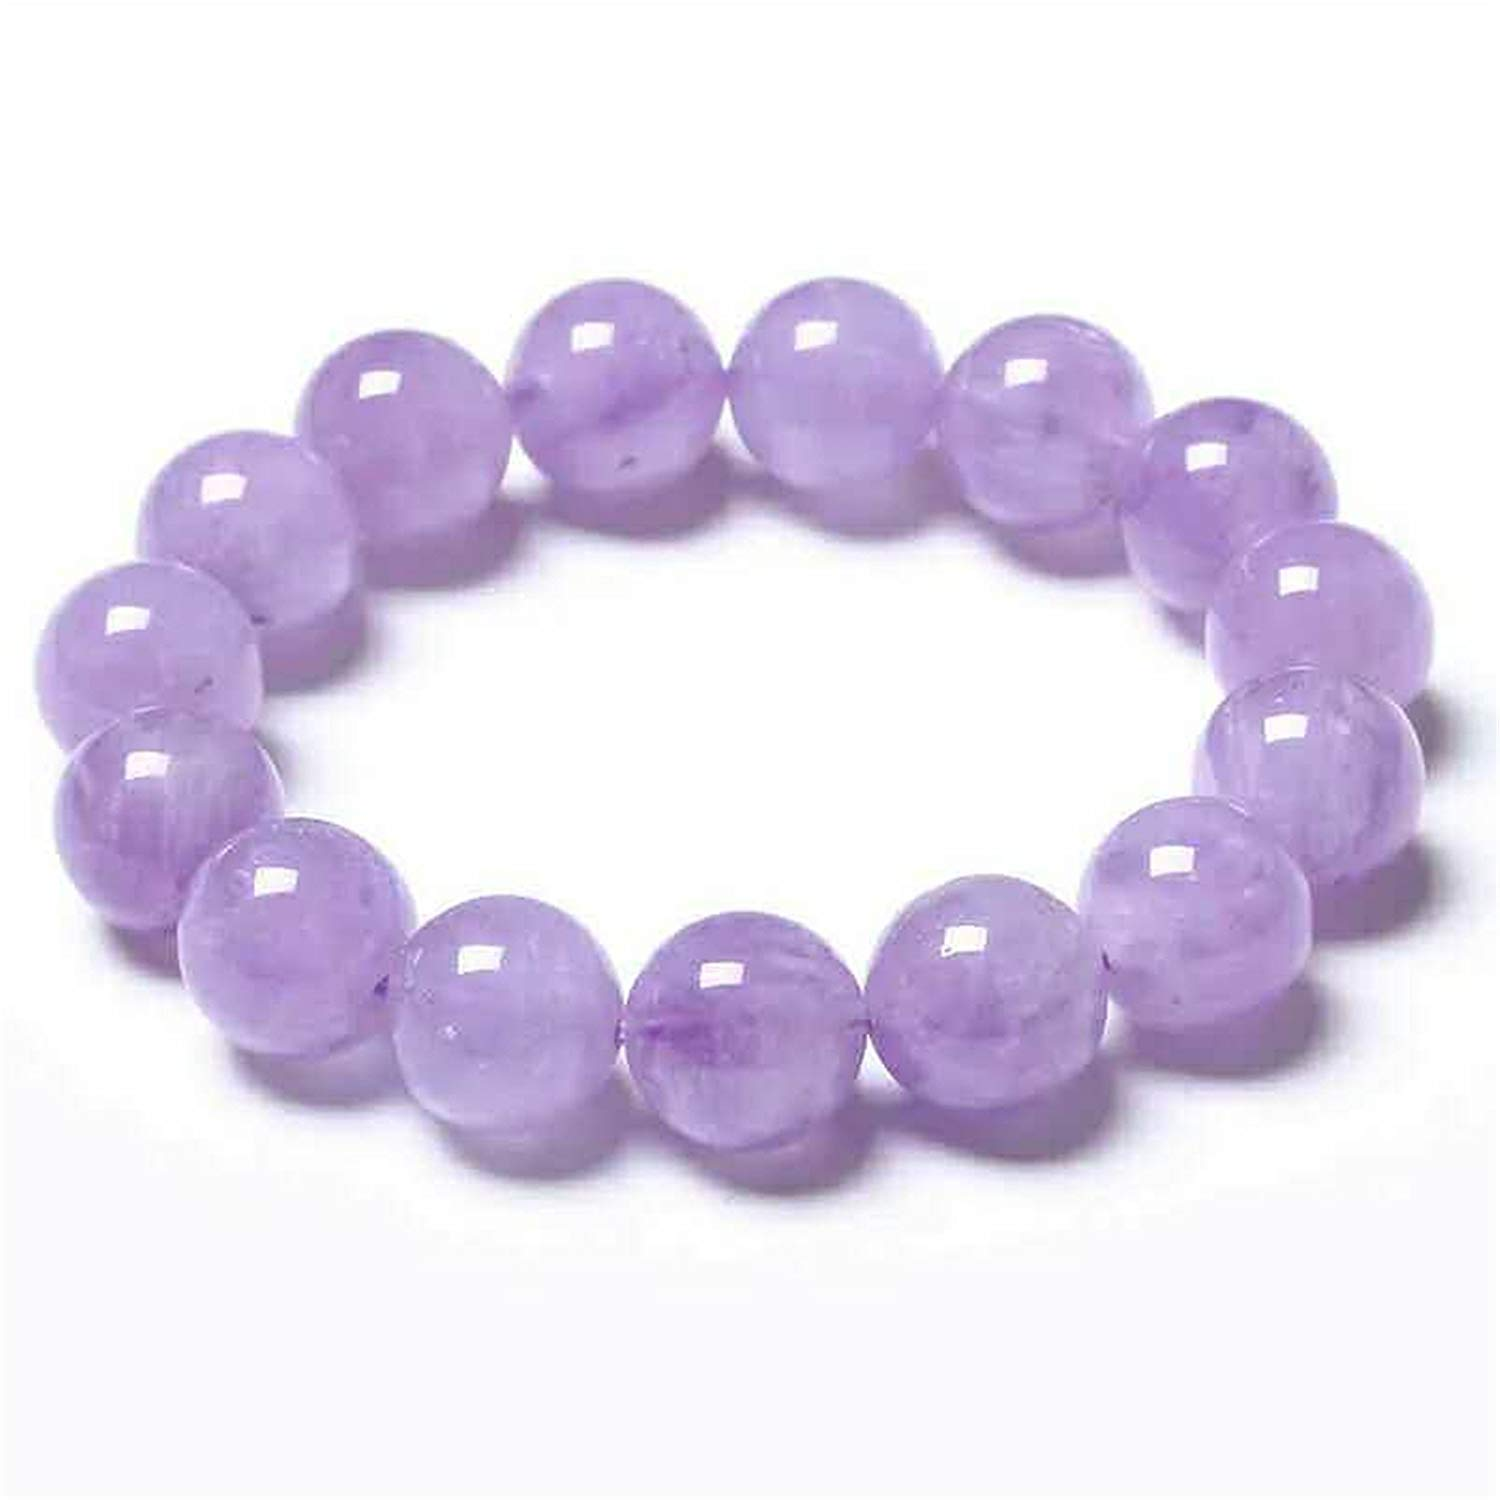 14mm Natural Amethyst Quartz Bracelet for Women Purple Crystal Stretch Round Beads Bracelet AAAA14mm Natural Amethyst Quartz Bracelet for Women Purple Crystal Stretch Round Beads Bracelet AAAA